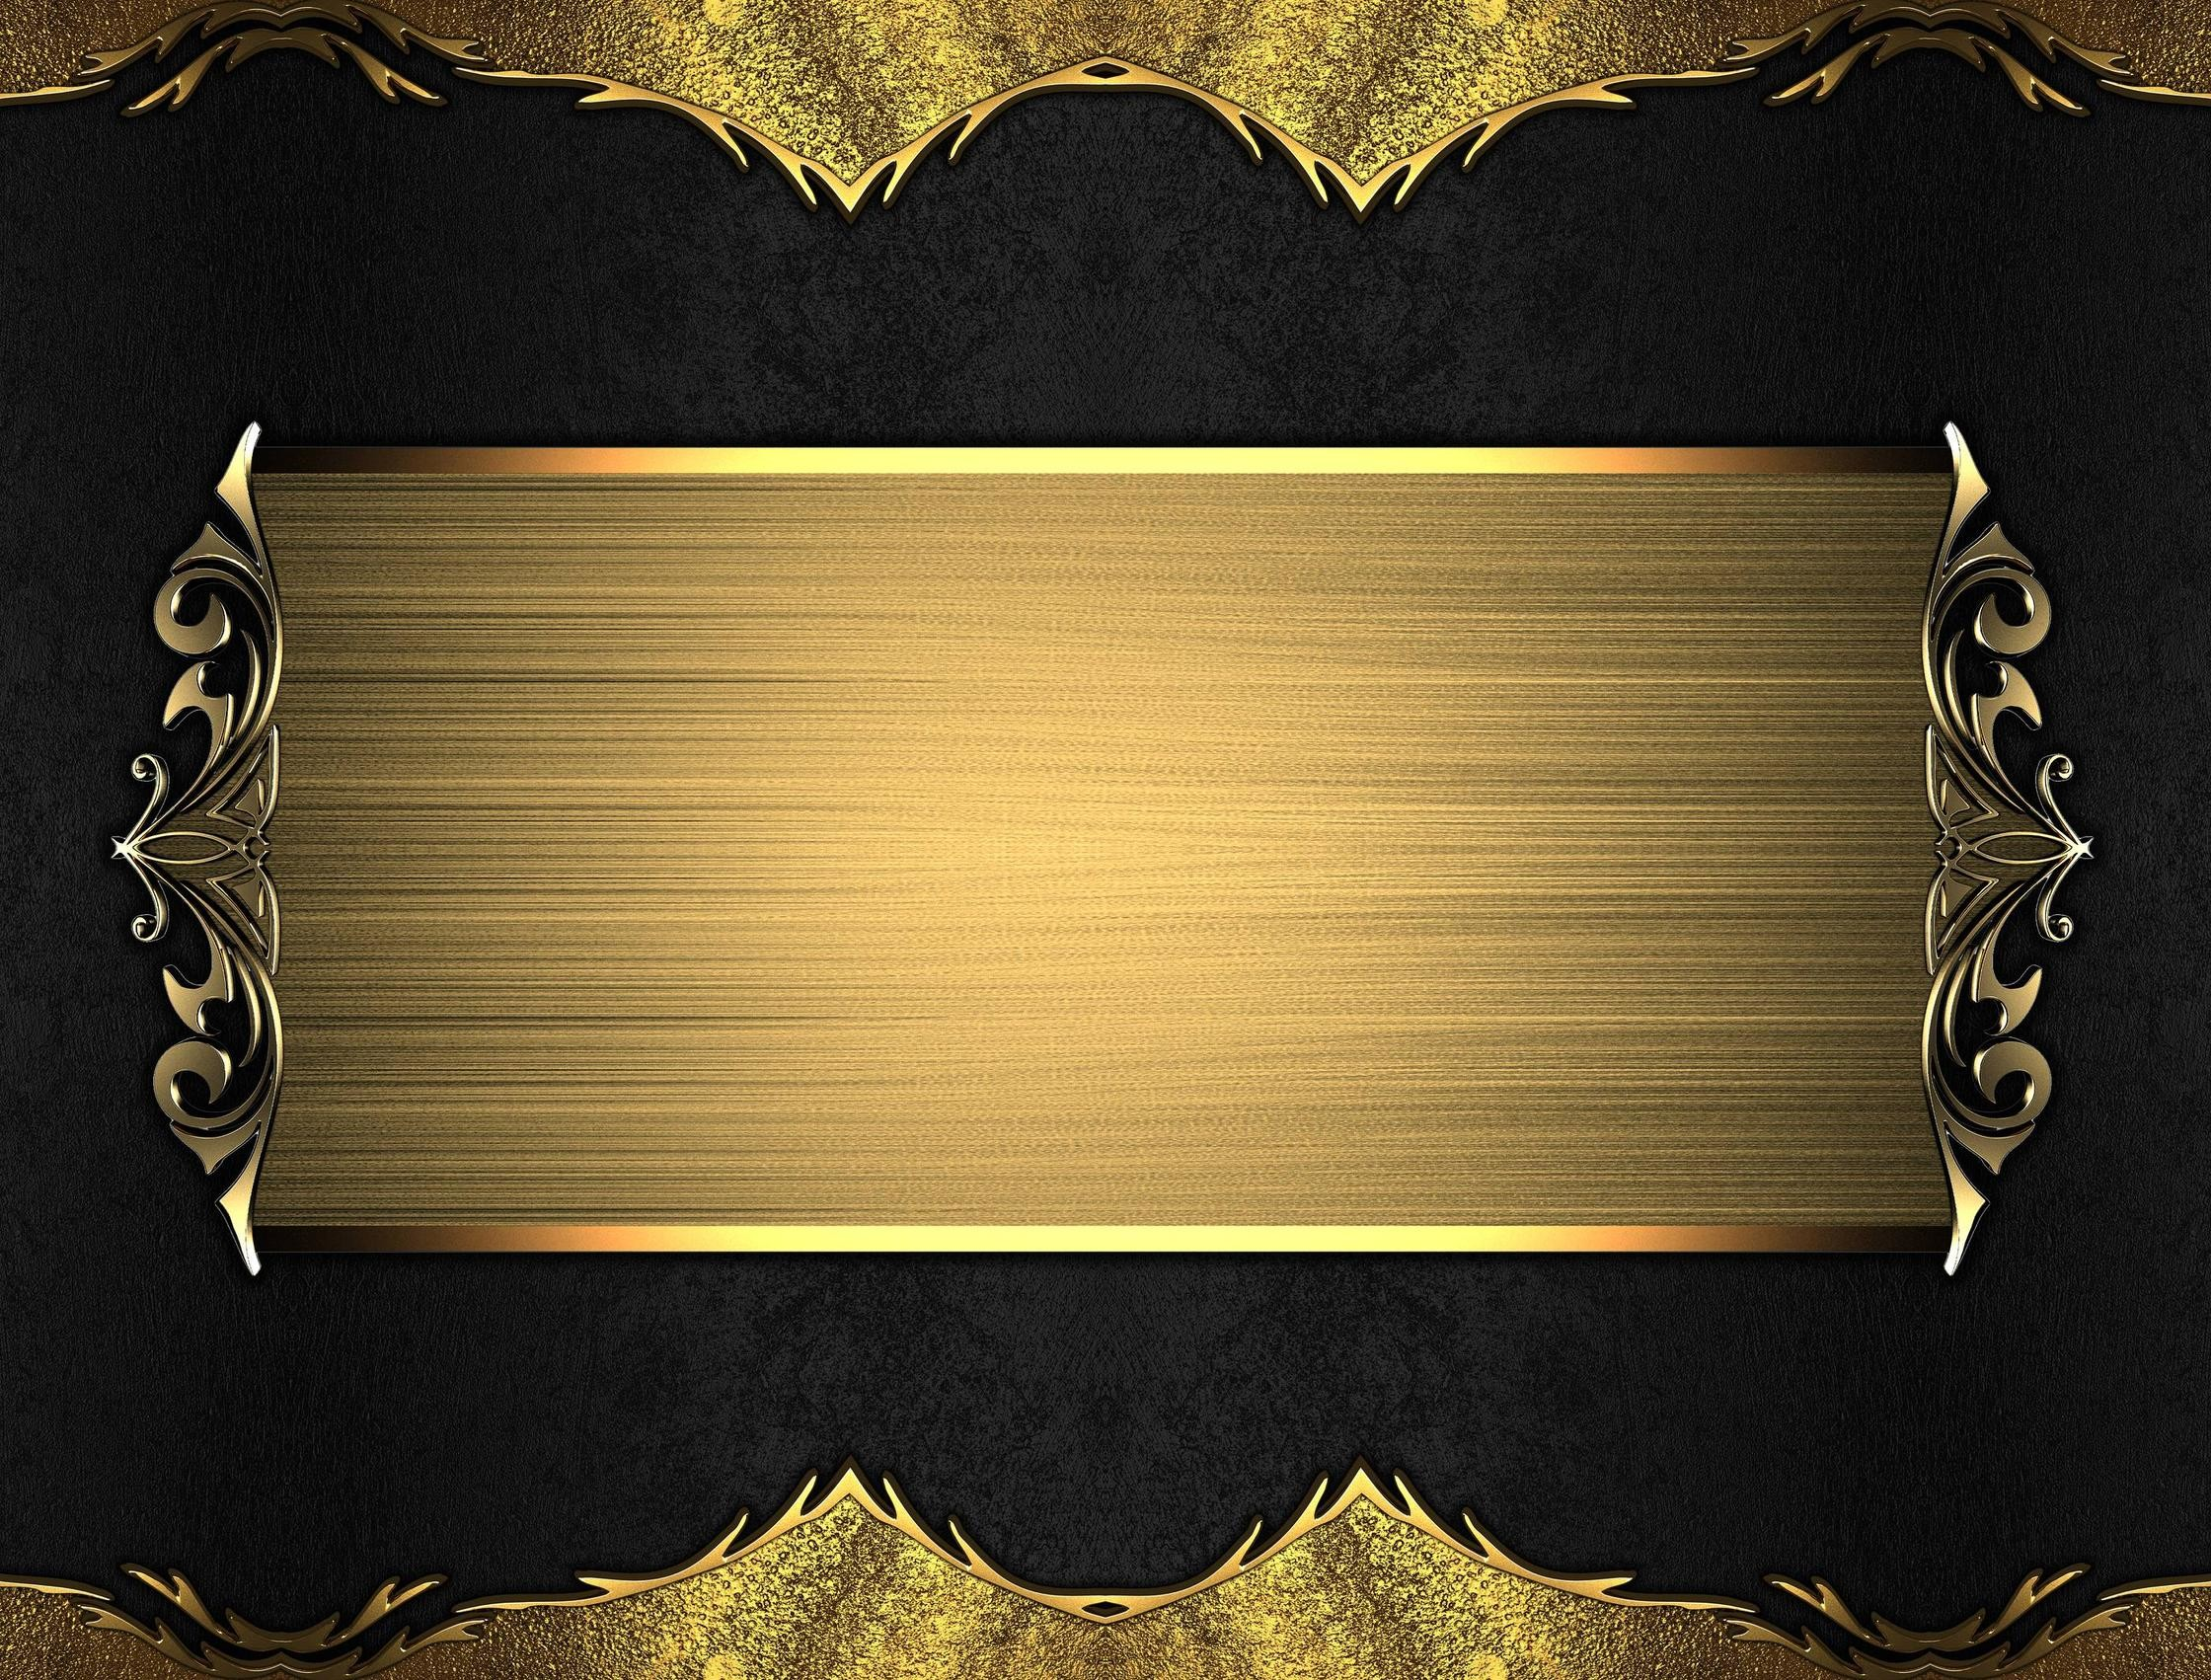 Android Animated Wallpaper For Iphone Black Gold Background 183 ①